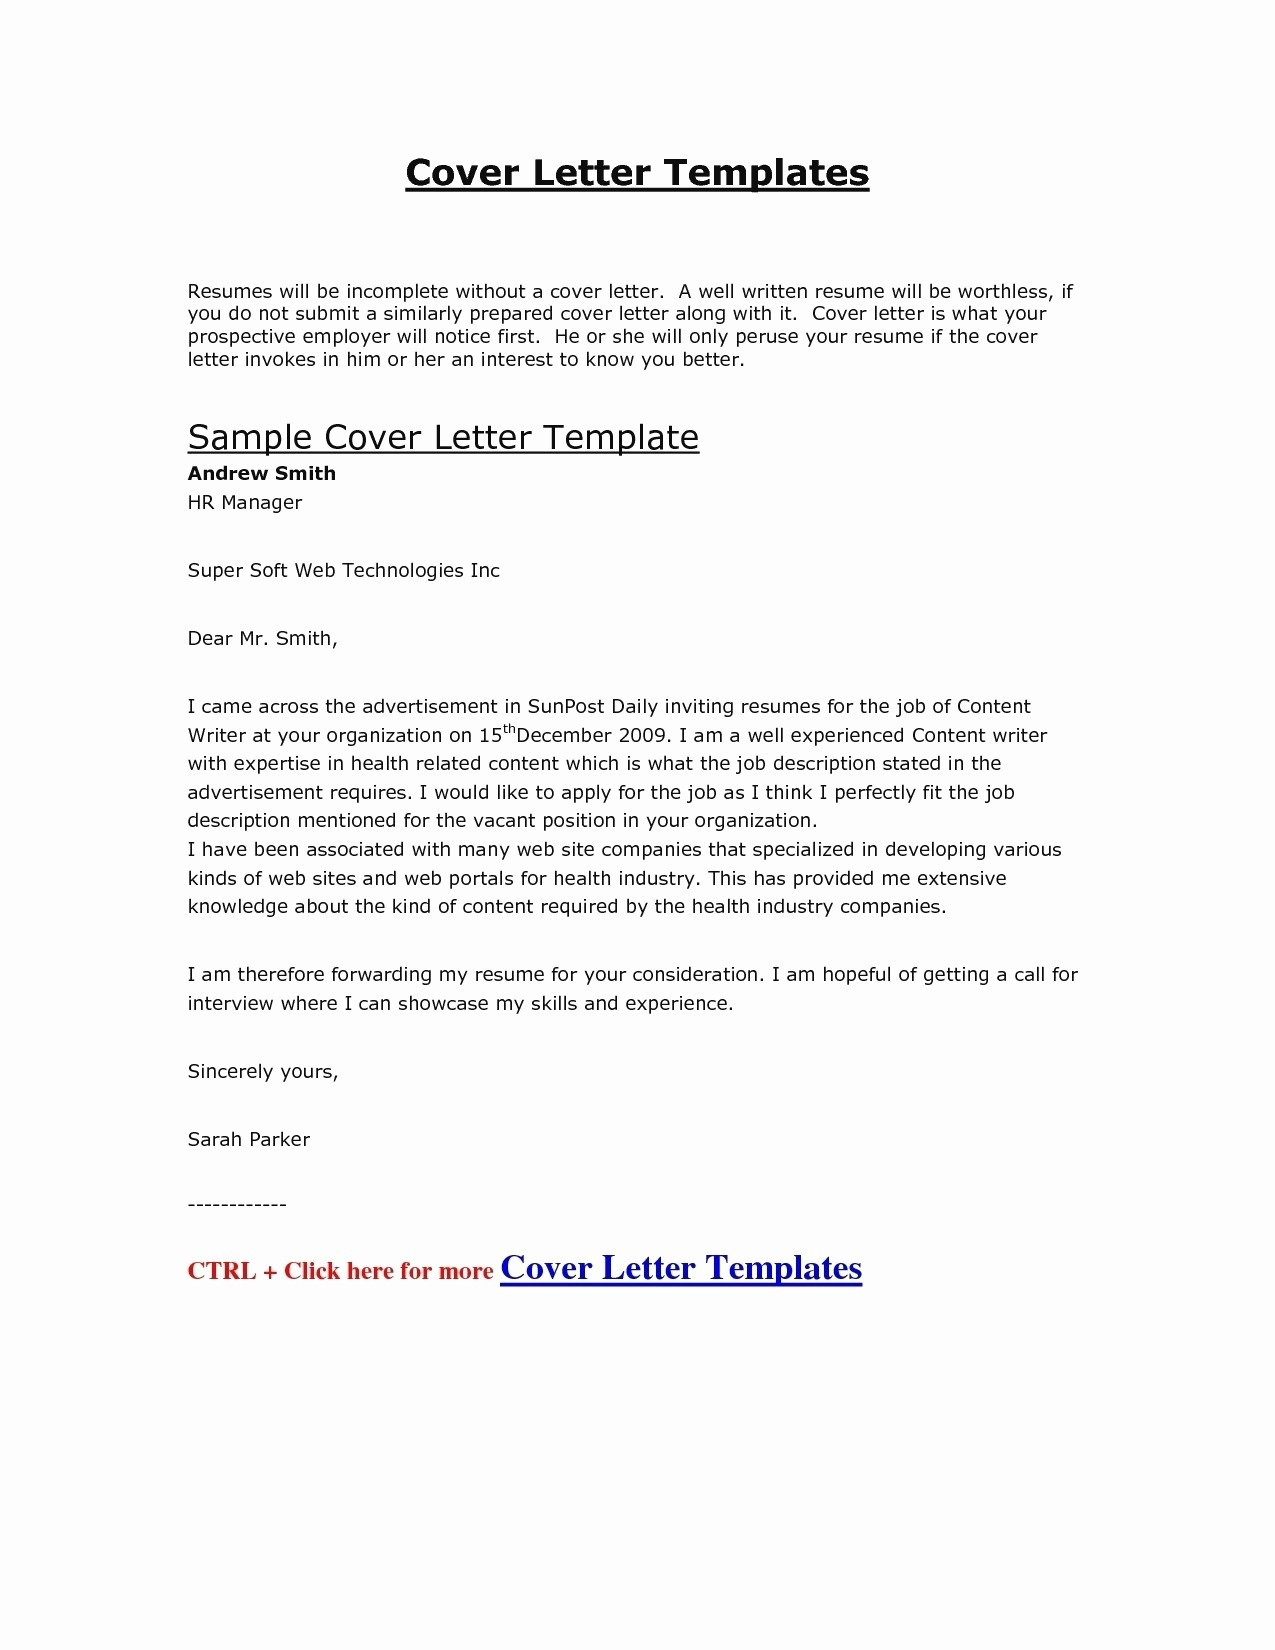 resume and cover letter template Collection-Job Apply Cover Letter Bank Letter format formal Letter Template Unique bylaws Template 0d 4-j